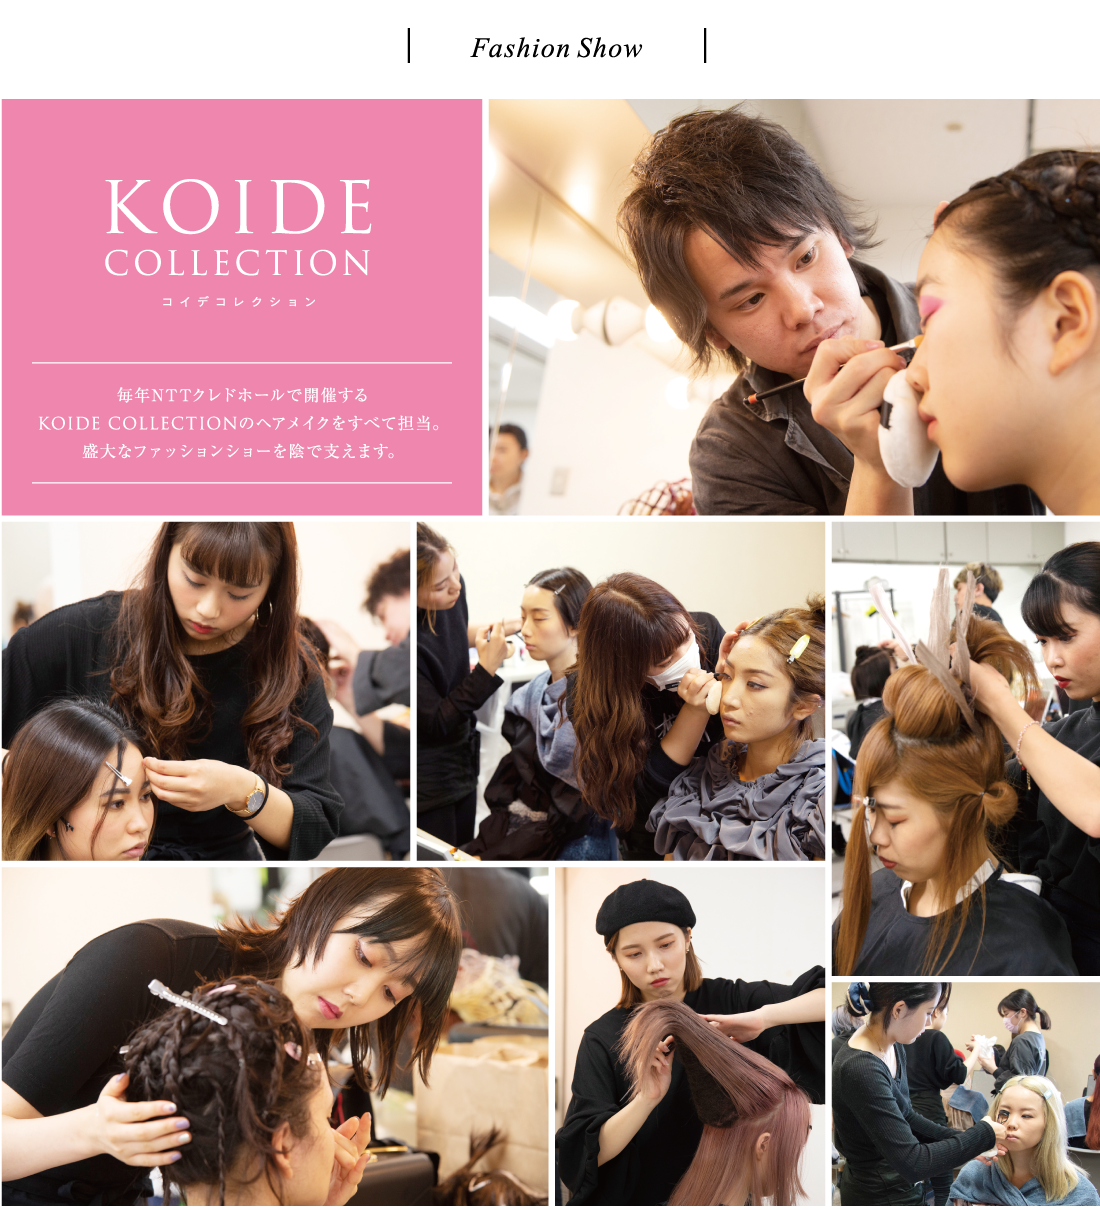 KOIDE COLLECTION